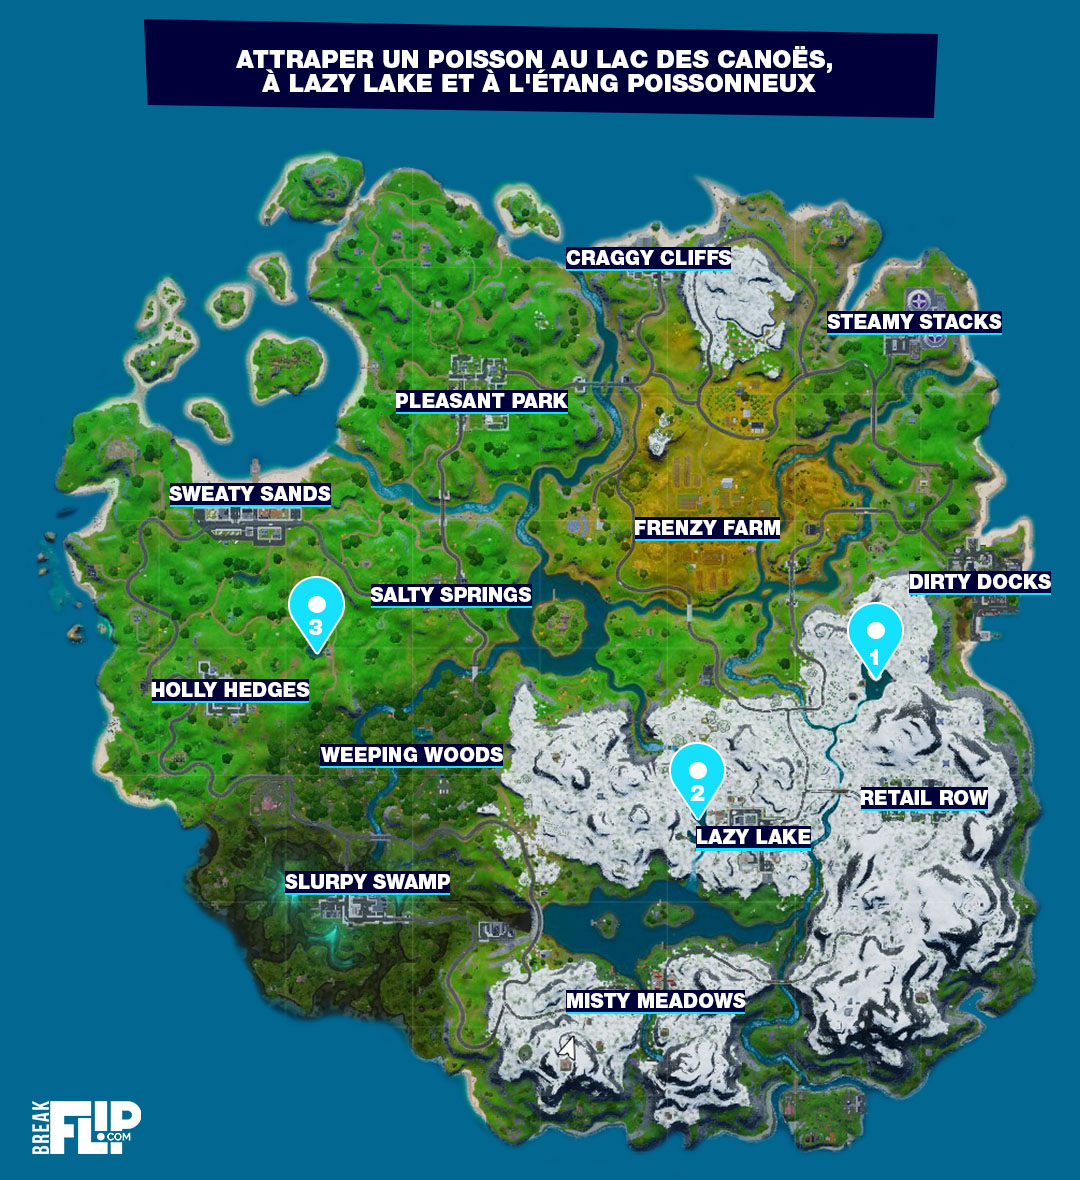 defi-fortnite-poisson-lac-lazy-etang